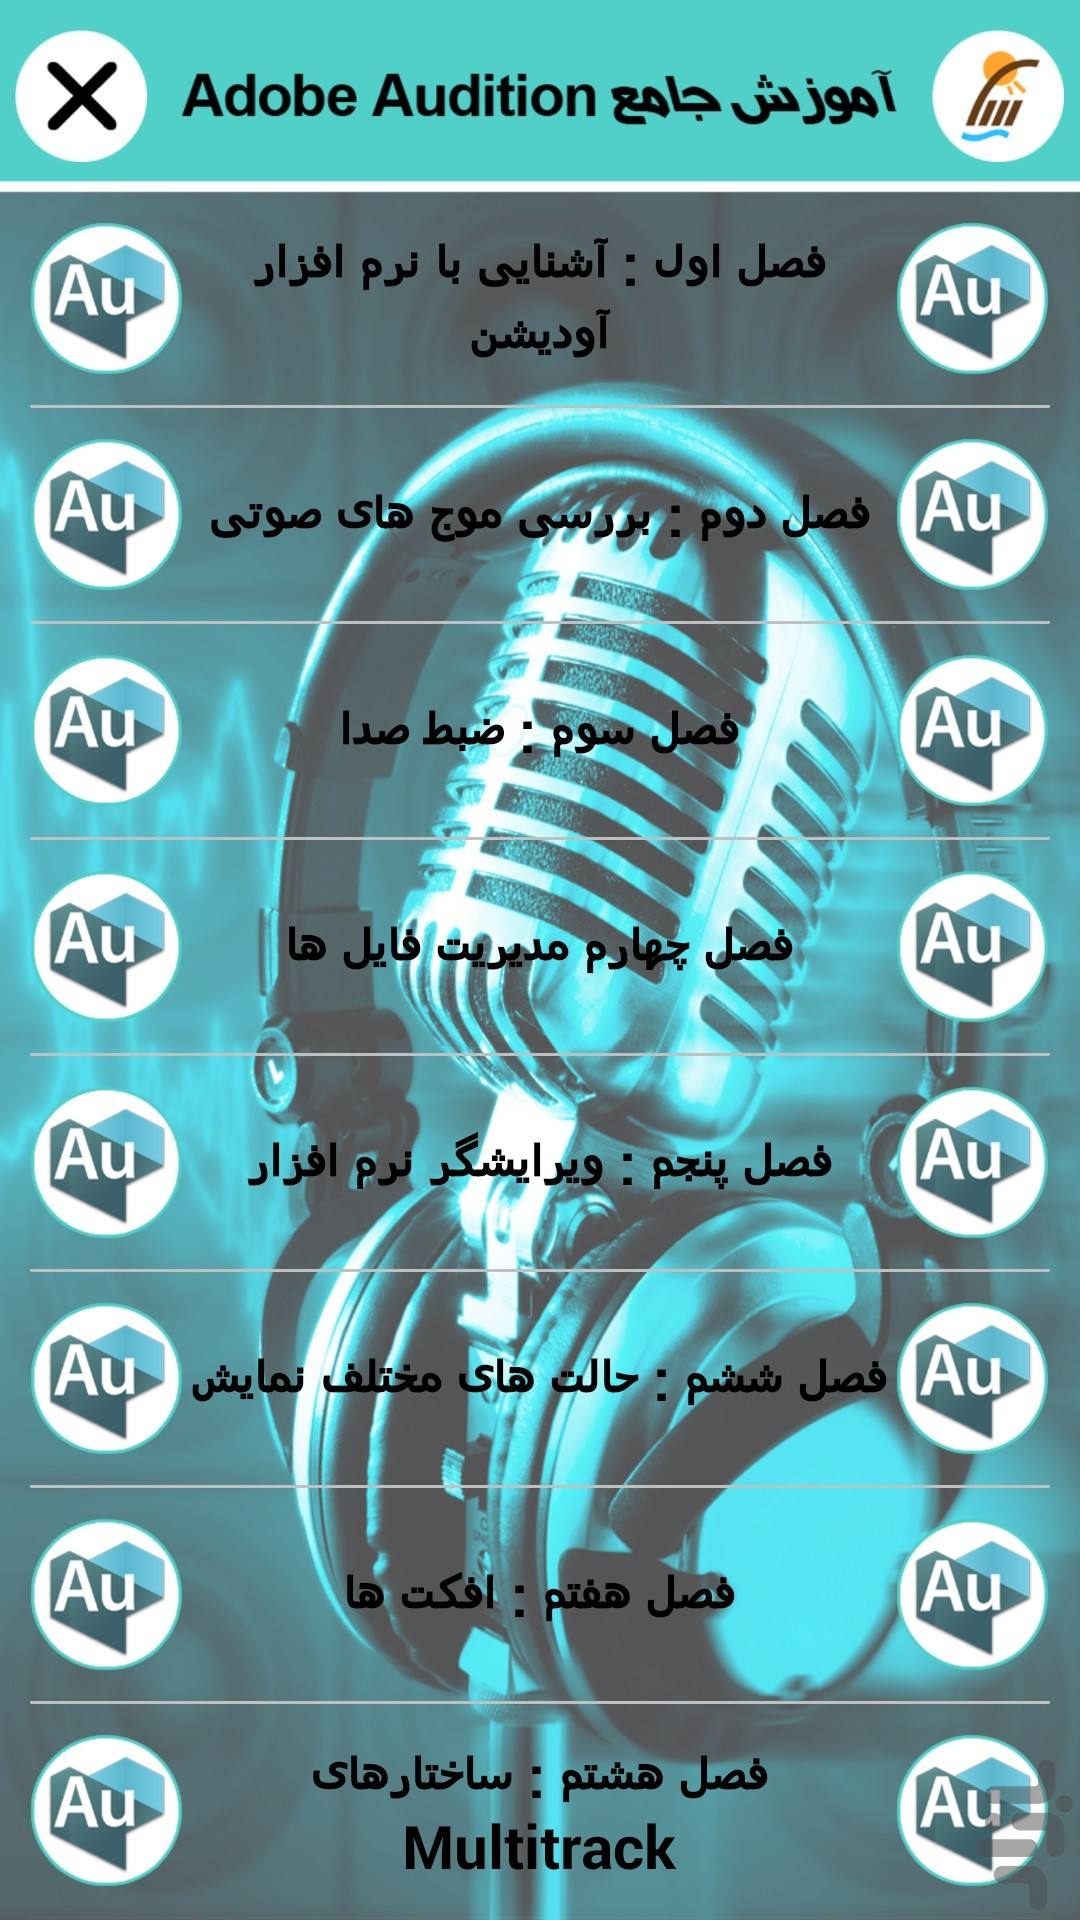 آموزش جامع Adobe Audition (فیلم)